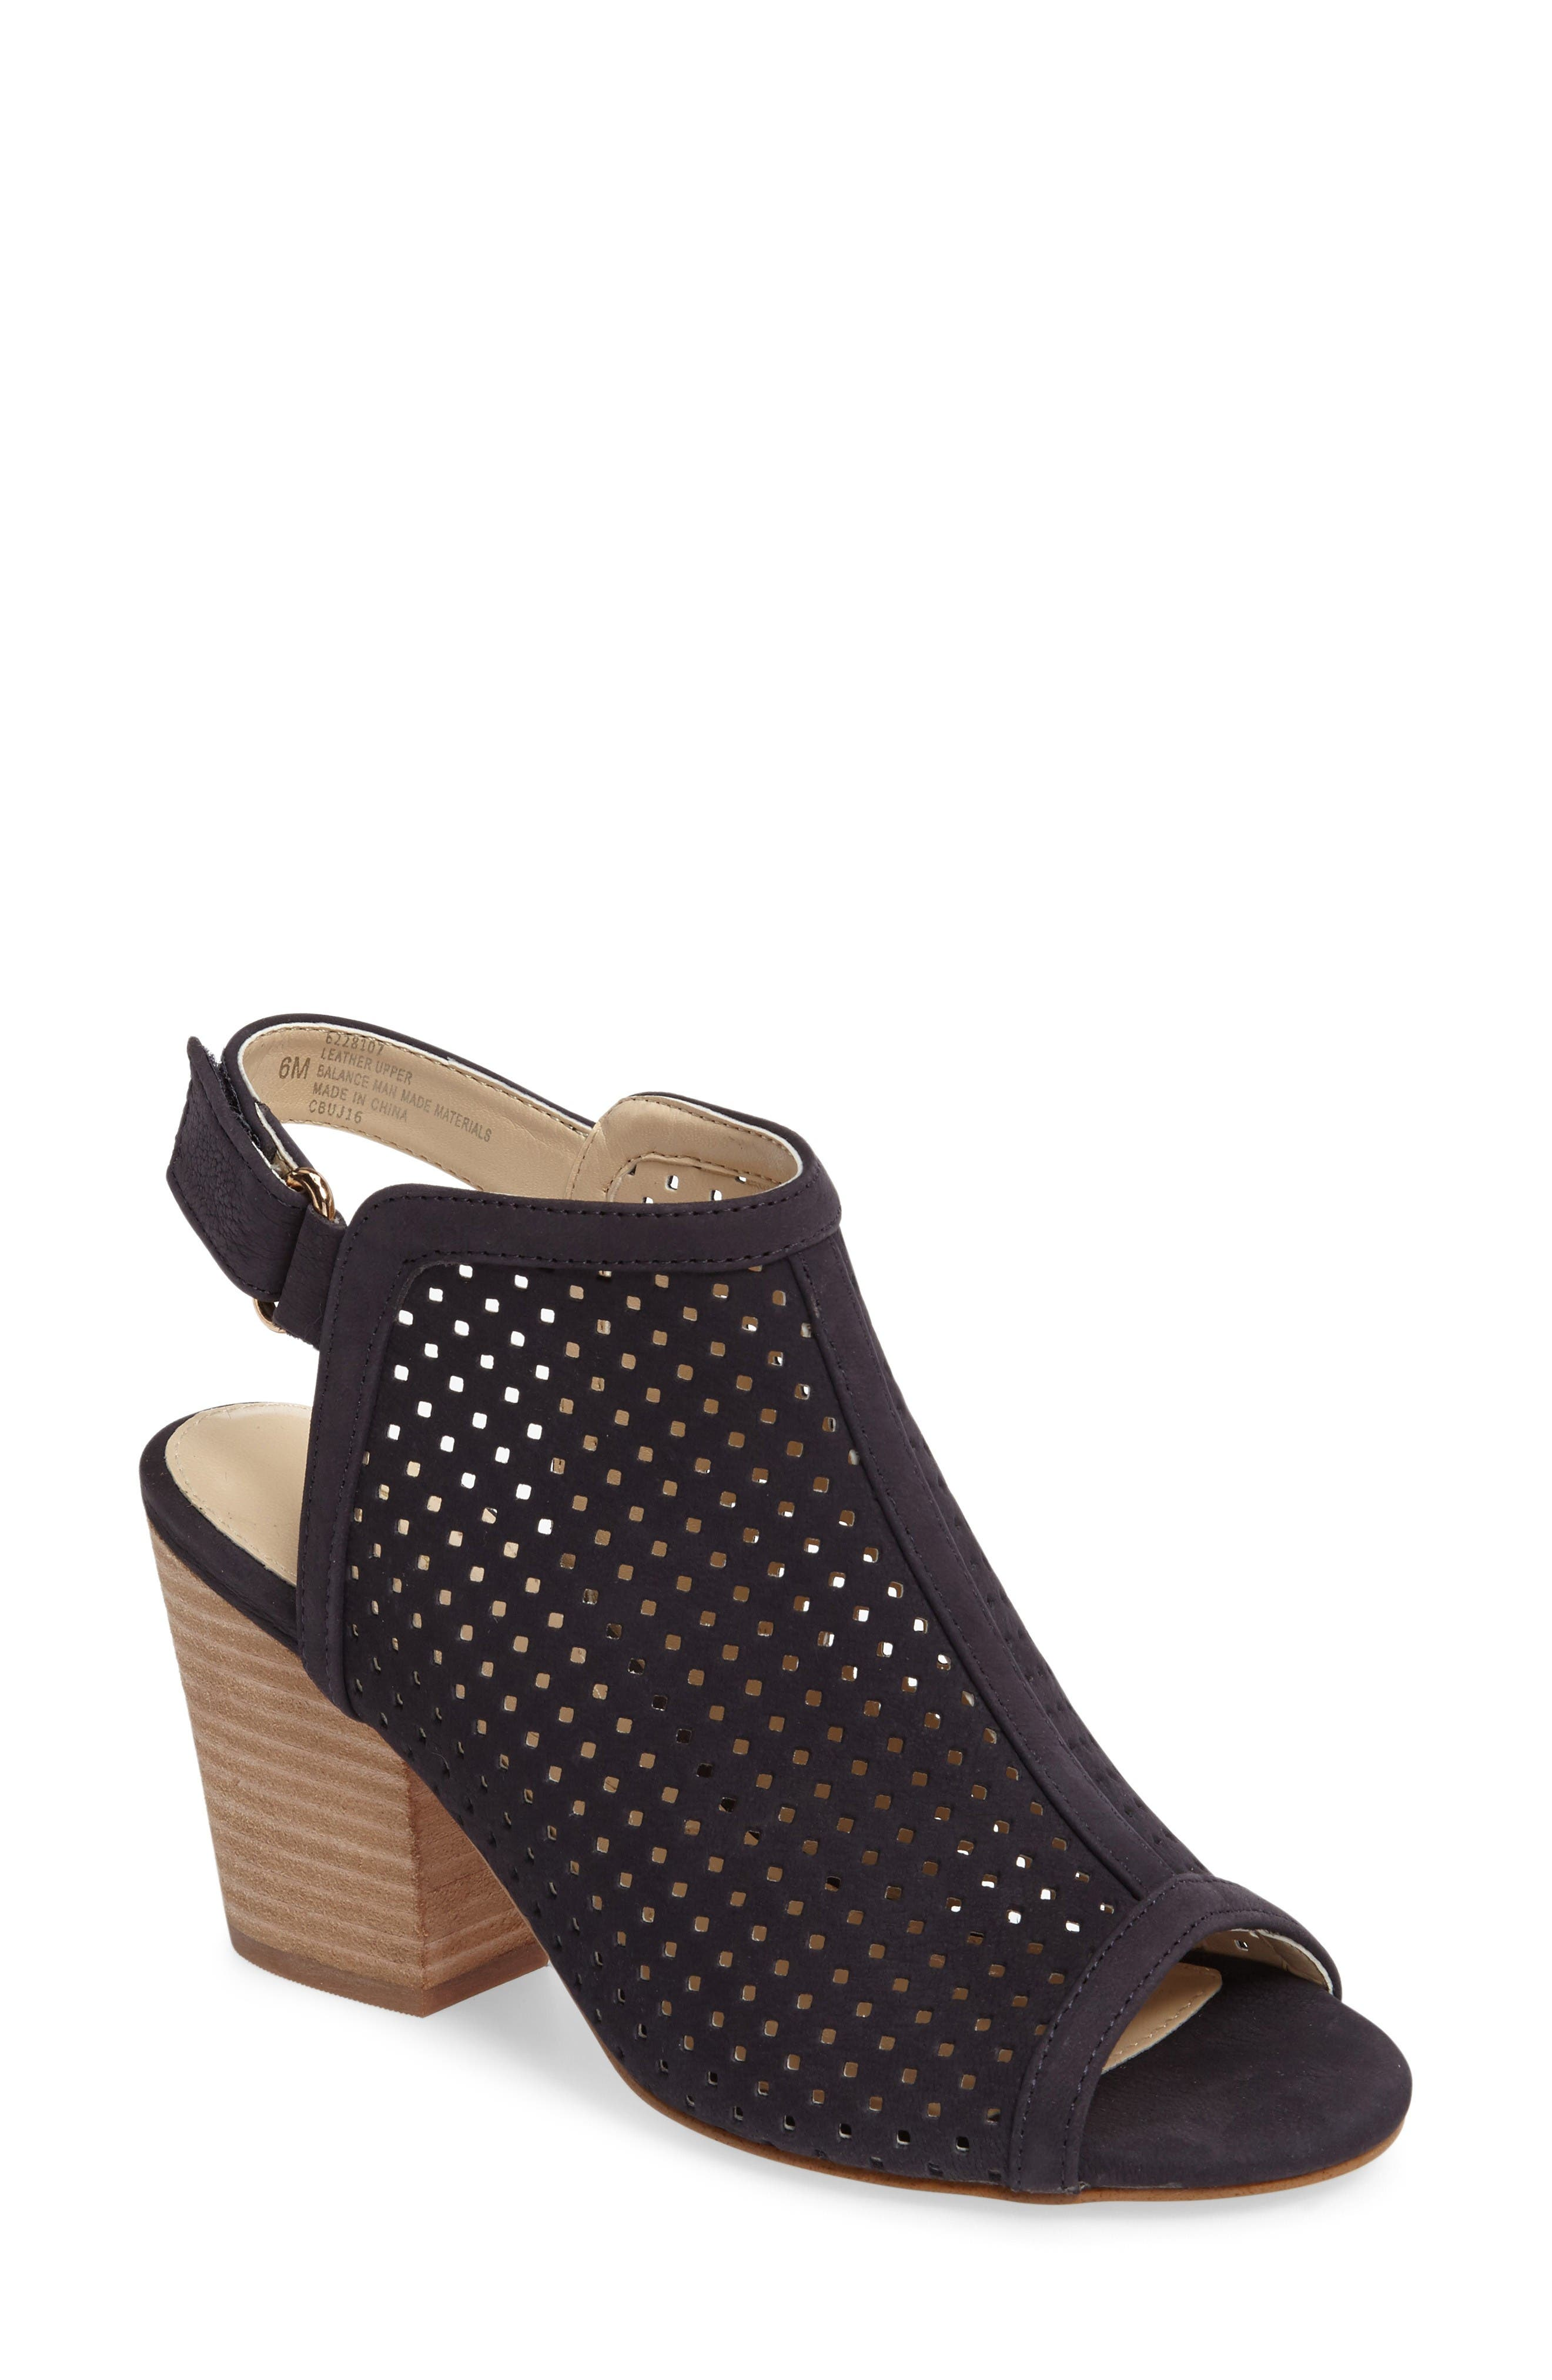 ISOLÁ 'Lora' Perforated Open-Toe Bootie Sandal